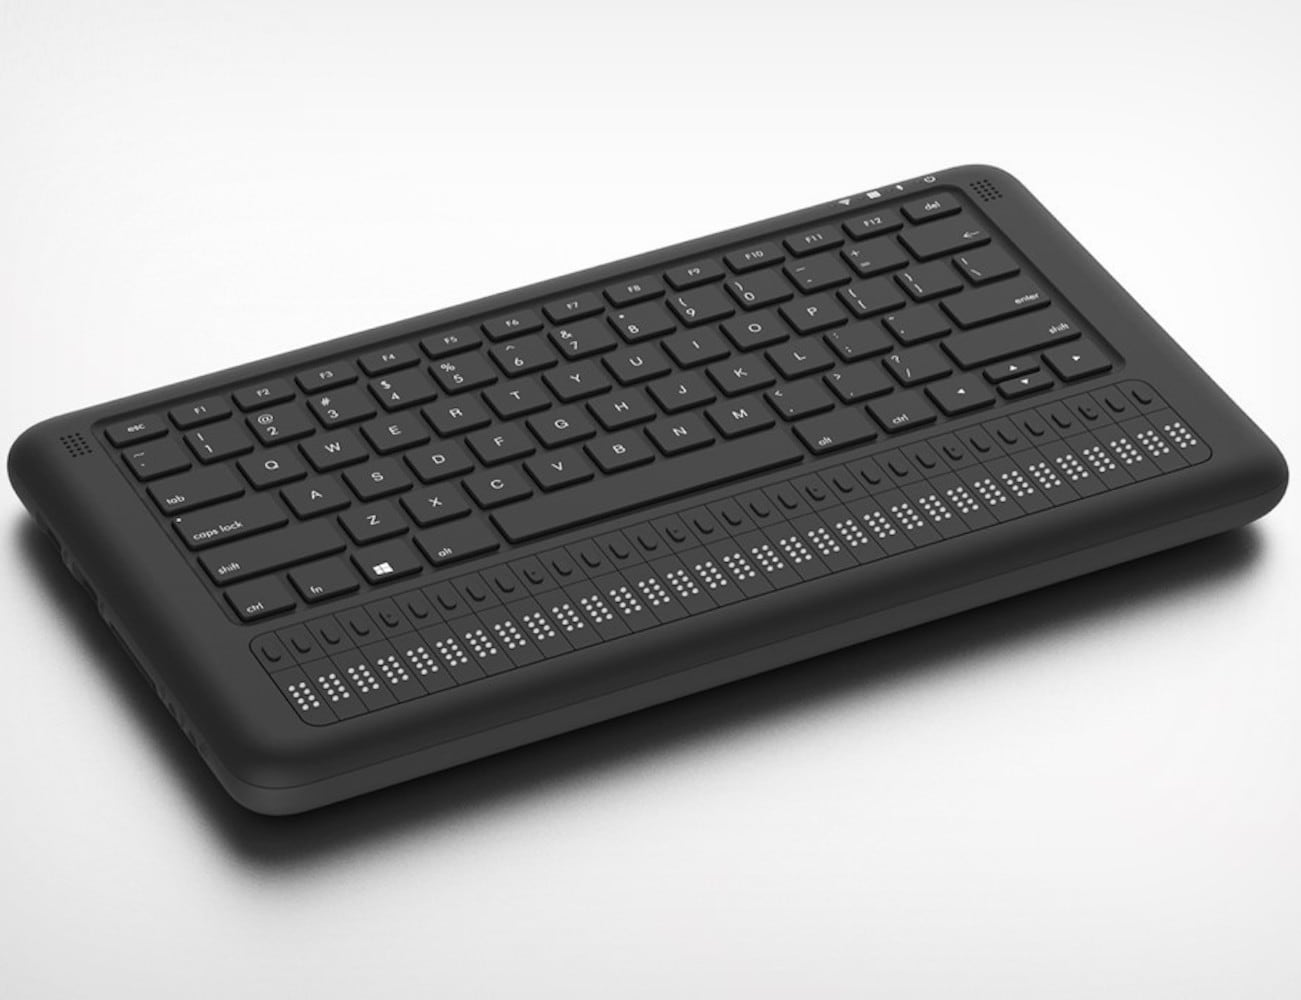 Braille-book All-In-One PC serves those with different visual abilities